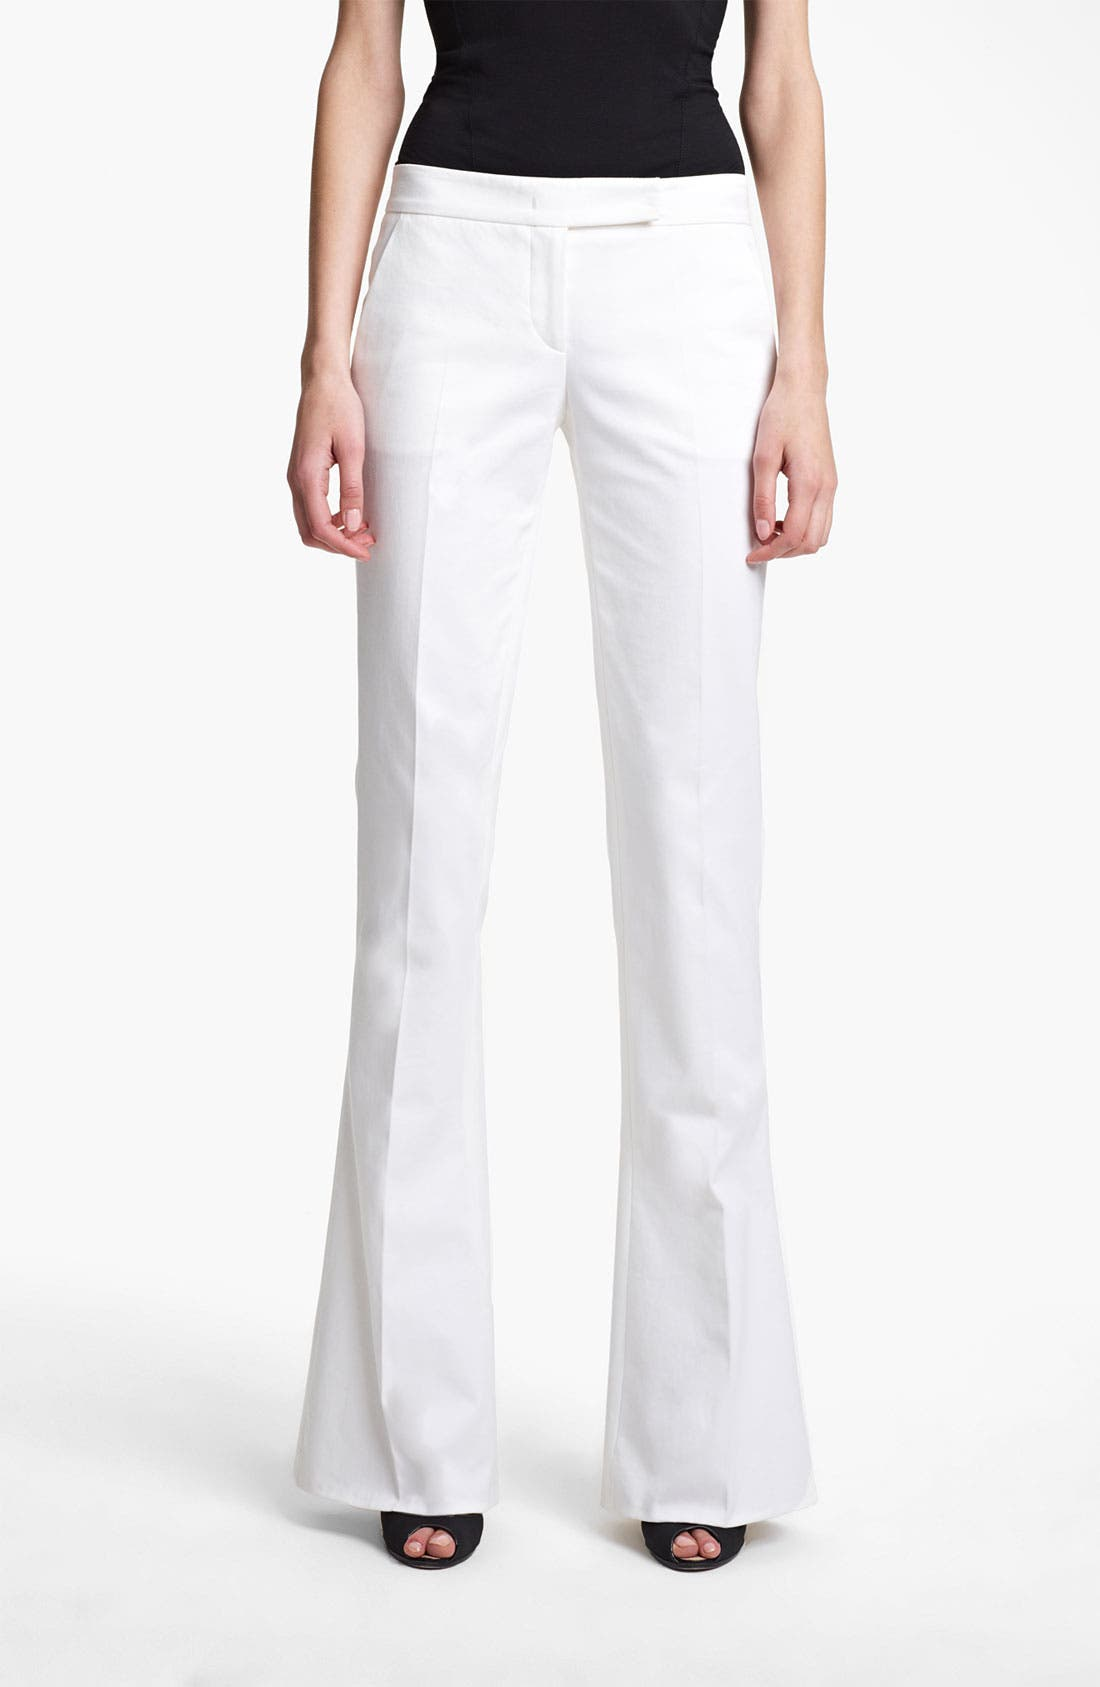 Alternate Image 1 Selected - Emilio Pucci Bootcut Stretch Cotton Pants